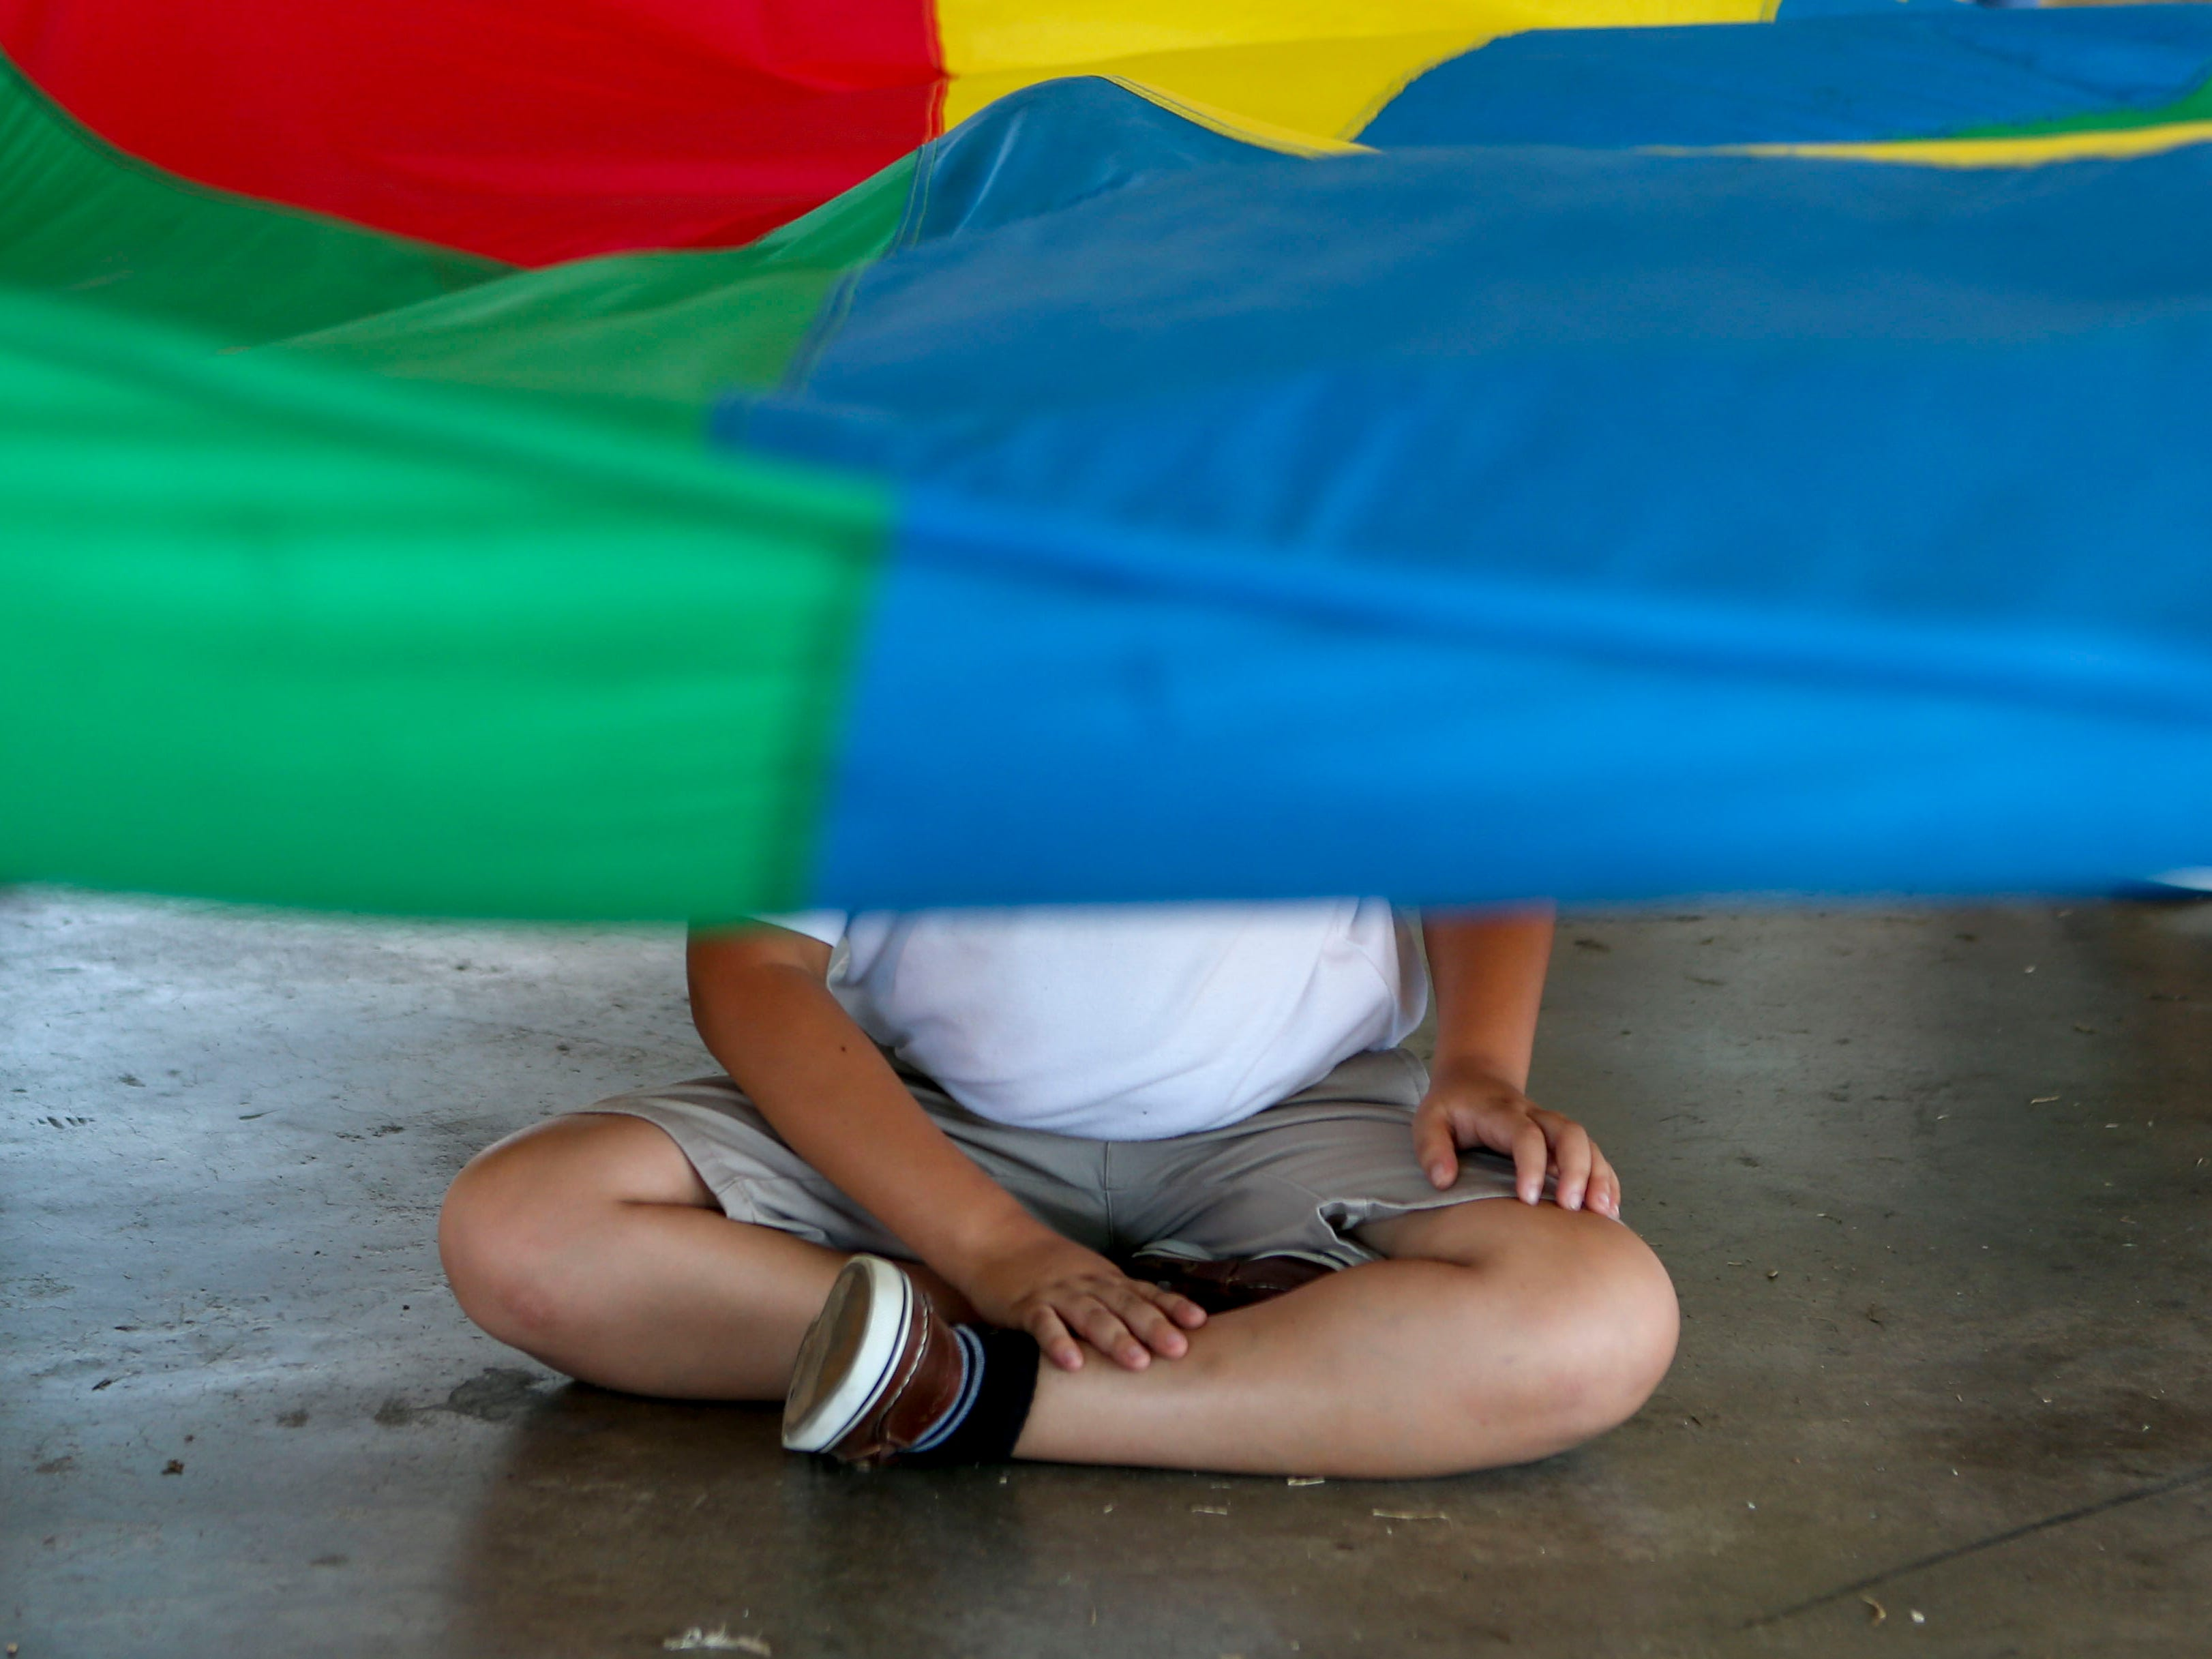 A young boy is shrouded by a tarp being tossed up and down by Sacred Heart students at the Day of Champions celebration held at Jackson Fairgrounds Park in Jackson, Tenn., on Wednesday, Sept. 19, 2018.